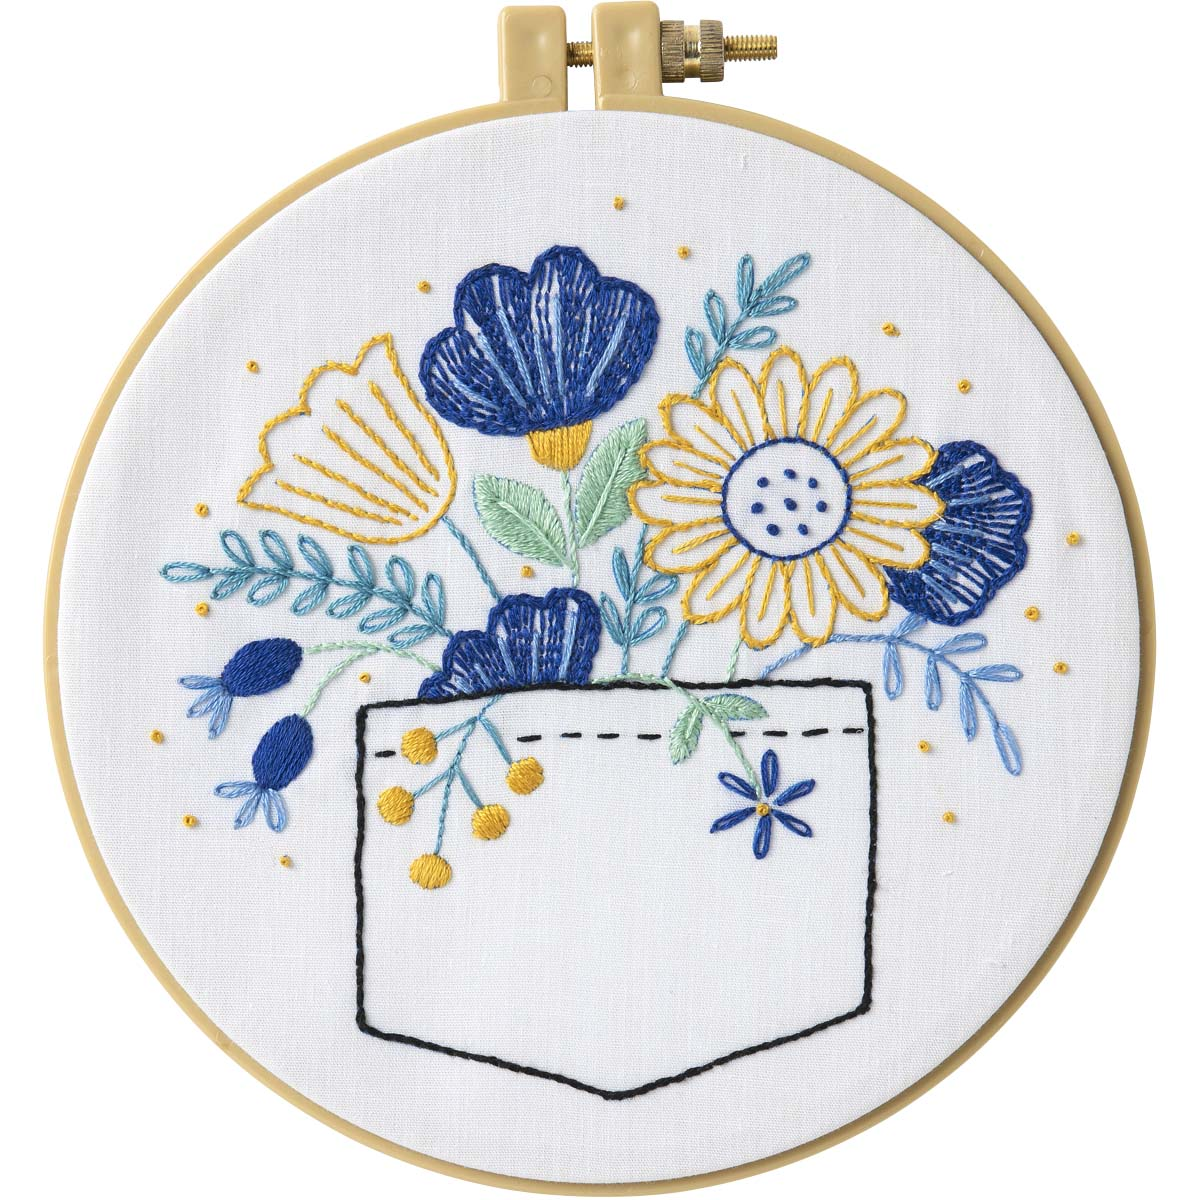 Bucilla ® Stamped Embroidery - Pocket Full of Posies - 47914E